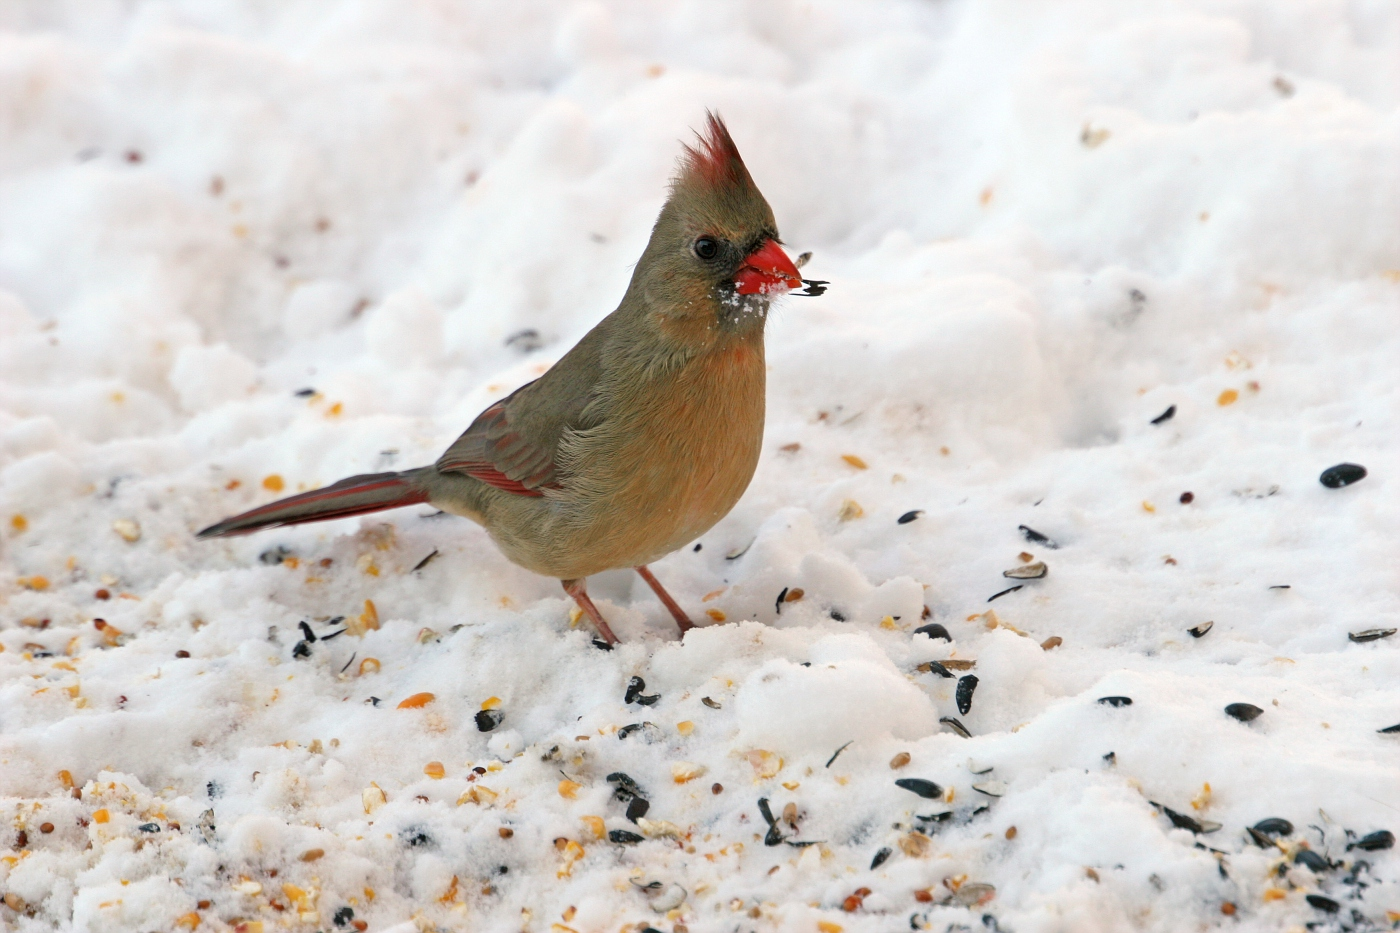 Female Cardinal with a Snack